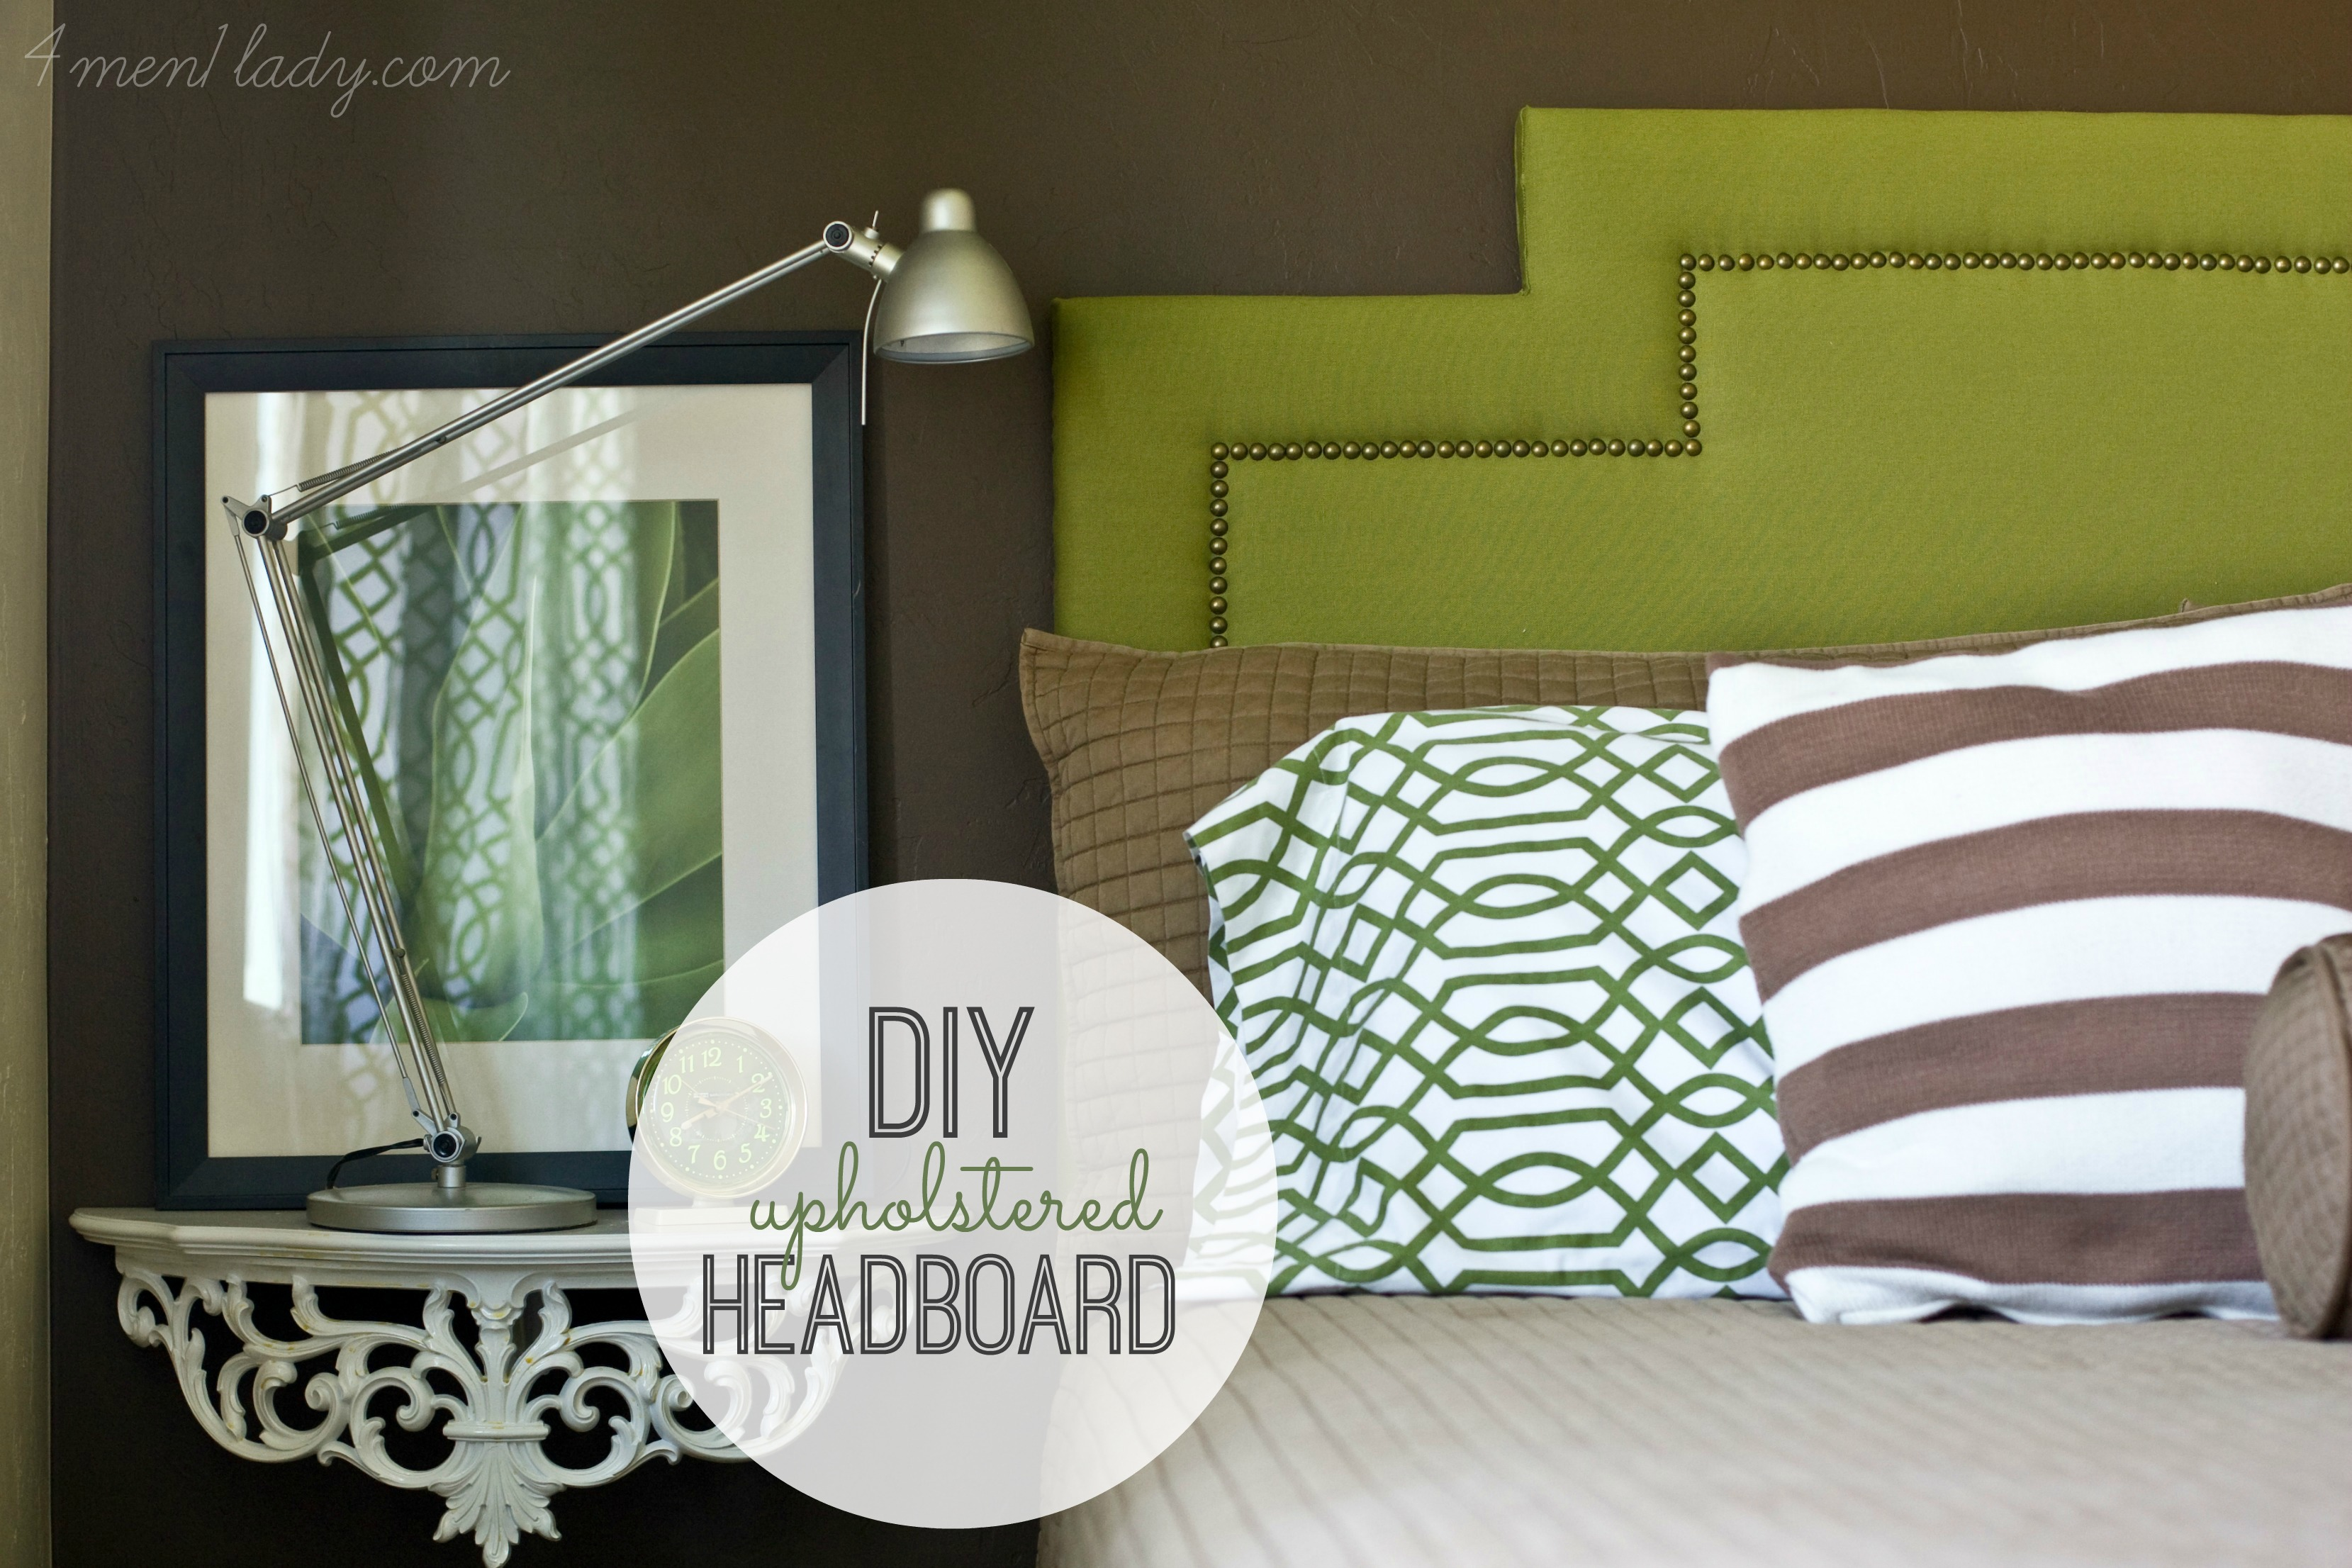 learn gray king the advantages blogbeen trim nailhead of bylbvnt california tufting and in headboard upholstered dark with